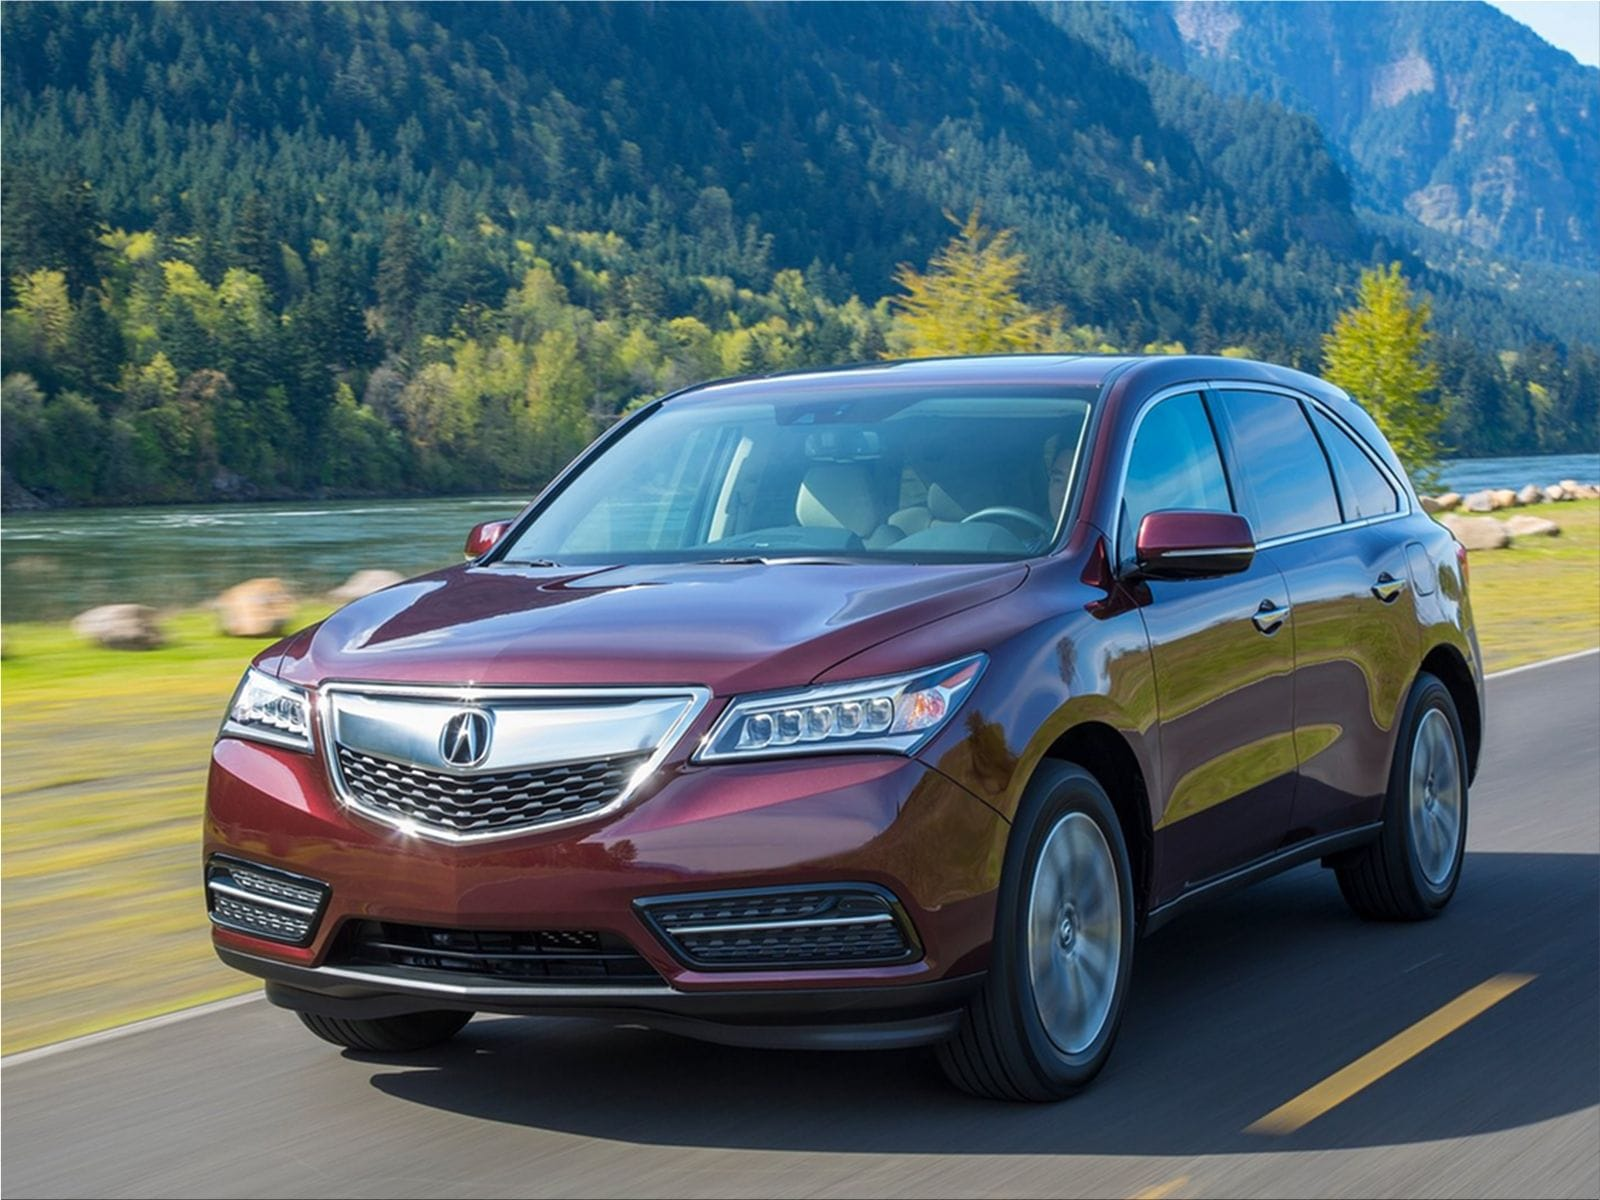 2014 acura mdx seven seat luxury suv acura car pictures. Black Bedroom Furniture Sets. Home Design Ideas